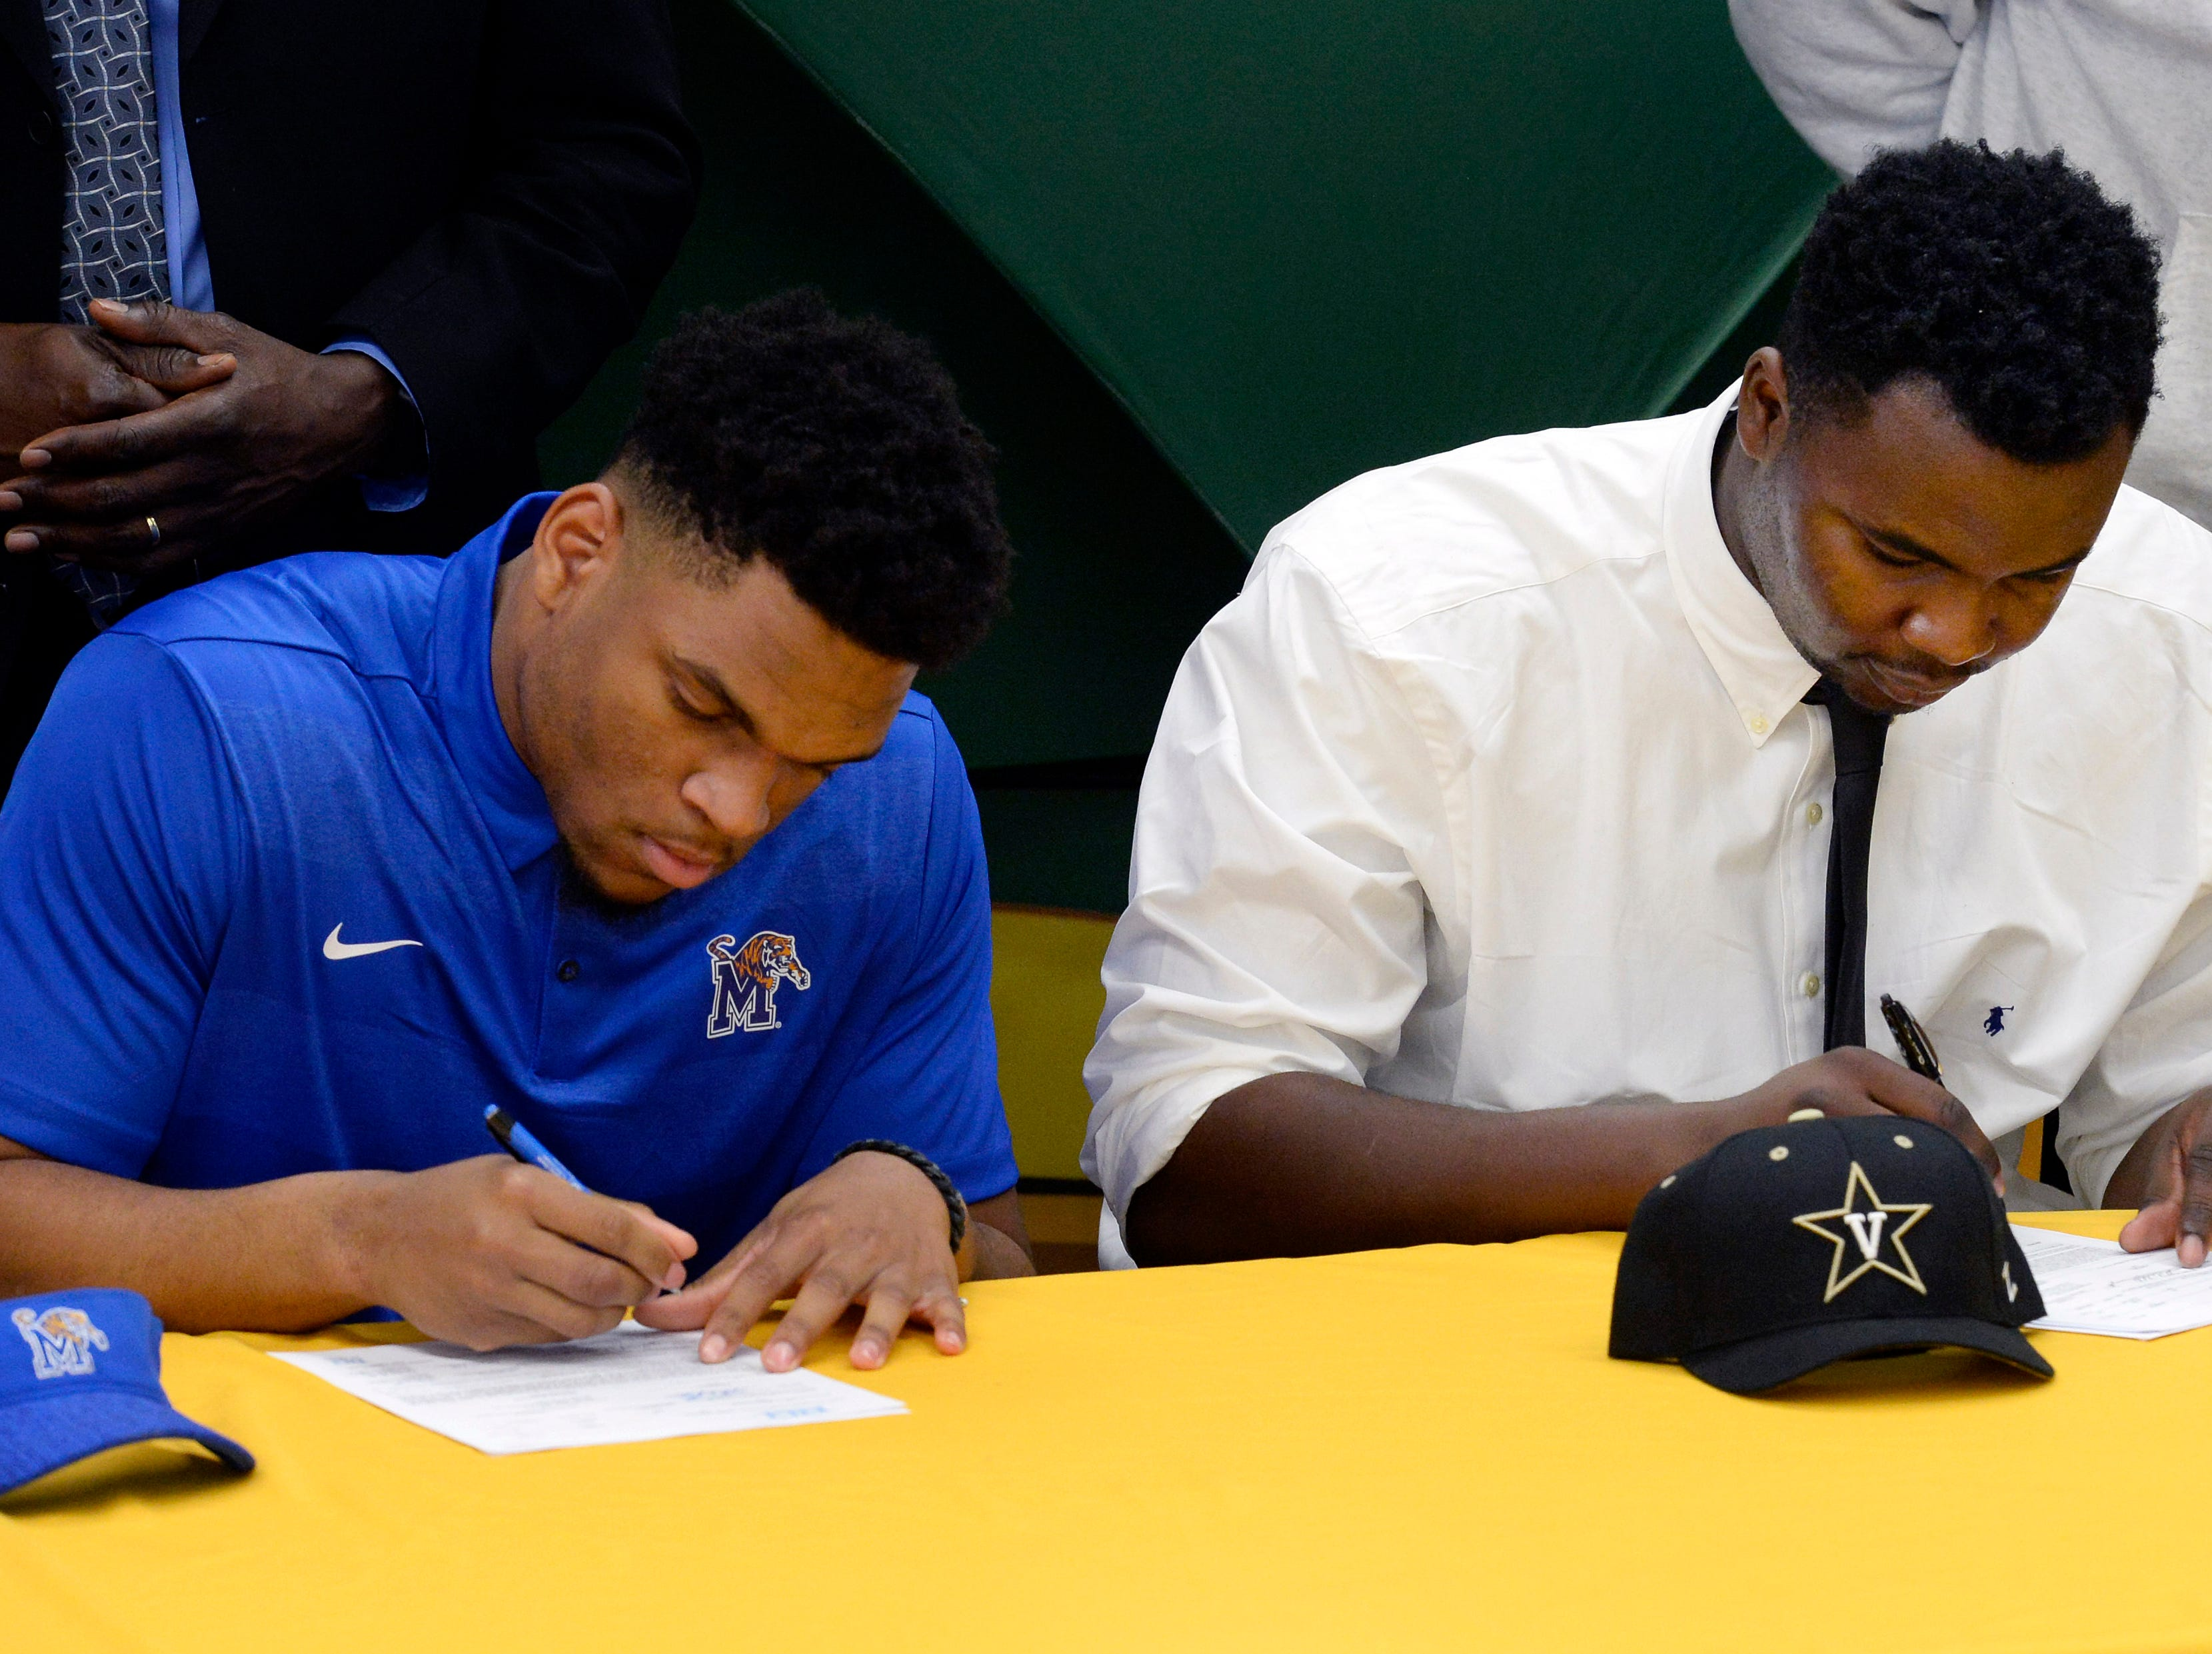 Hillsboro High School's Joe Honeysucker, left,  and Donald Fitzgerald sign their national letters of intent to play football in college on Wednesday, Dec. 19, 2018, in Nashville,Tenn. Honeysucker is signing to play for Memphis. Fitzgerald, who played one season of high school football, is the adopted son of Hillsboro Coach Maurice Fitzgerald and is from Nigeria. He is playing for Vanderbilt.